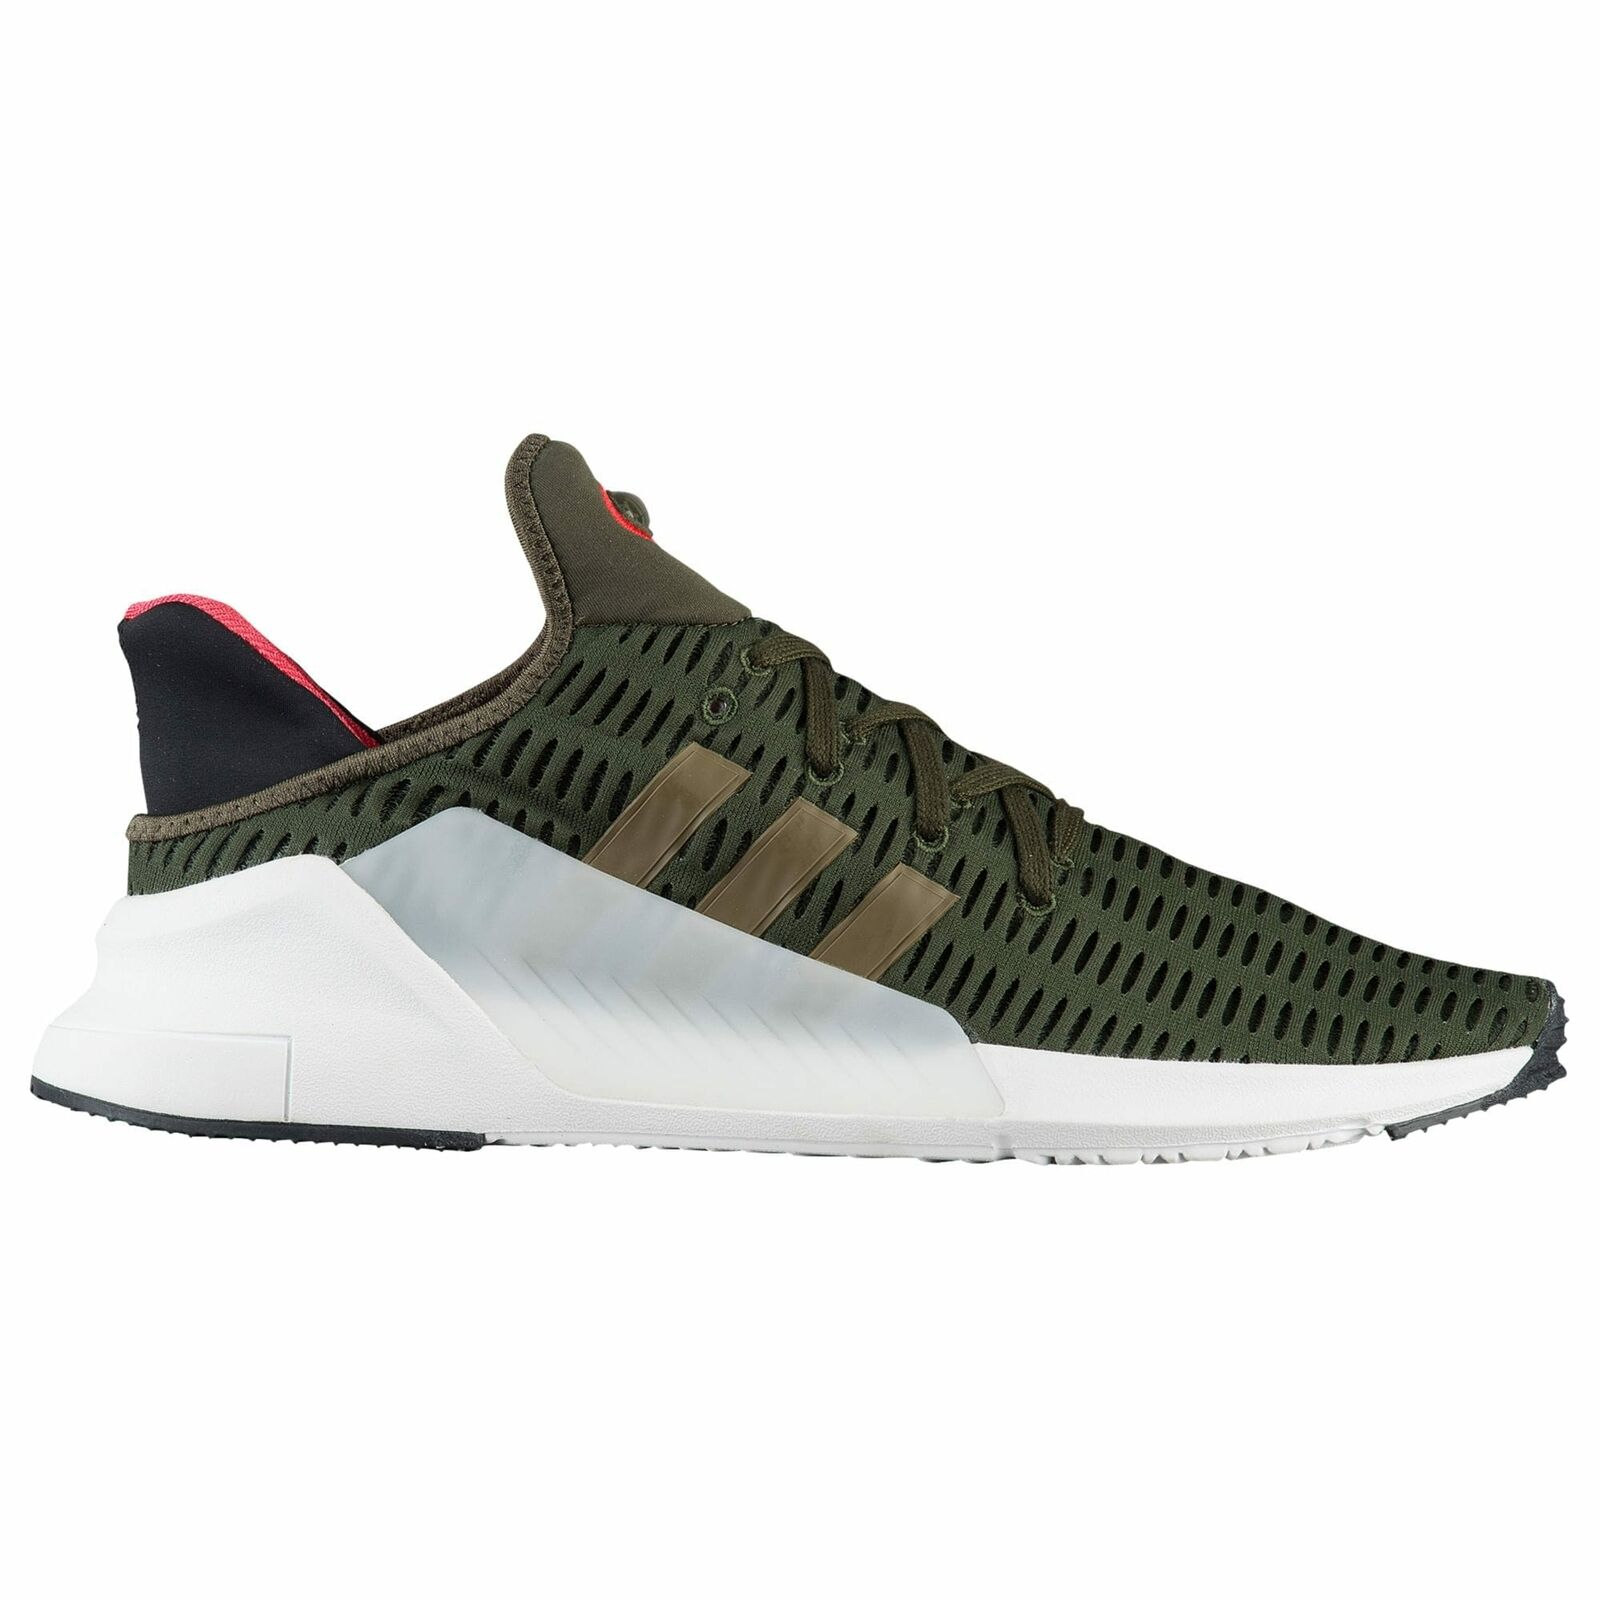 Adidas Originals ClimaCool 02 17 Men's Night Cargo Trace Olive White CG3345